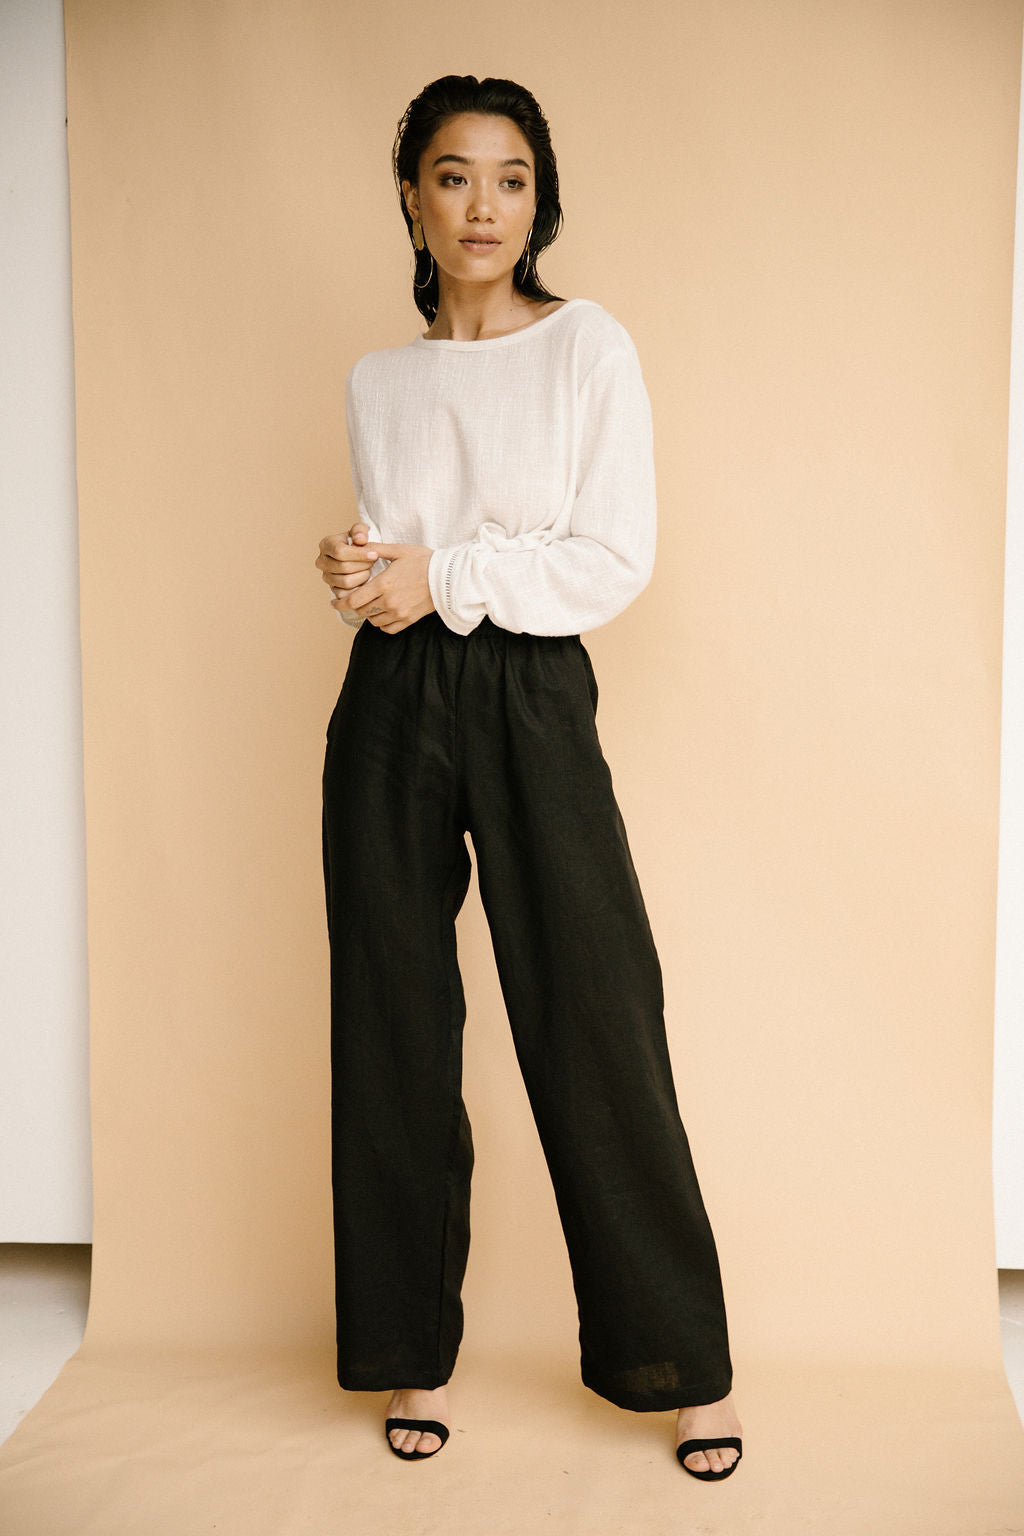 Alexa Pant Black Before Anyone Else Womens Pants Black Womens Linen Black Pants Free Express Shipping Free Standard Shipping Worldwide Afterpay $20 off your first order